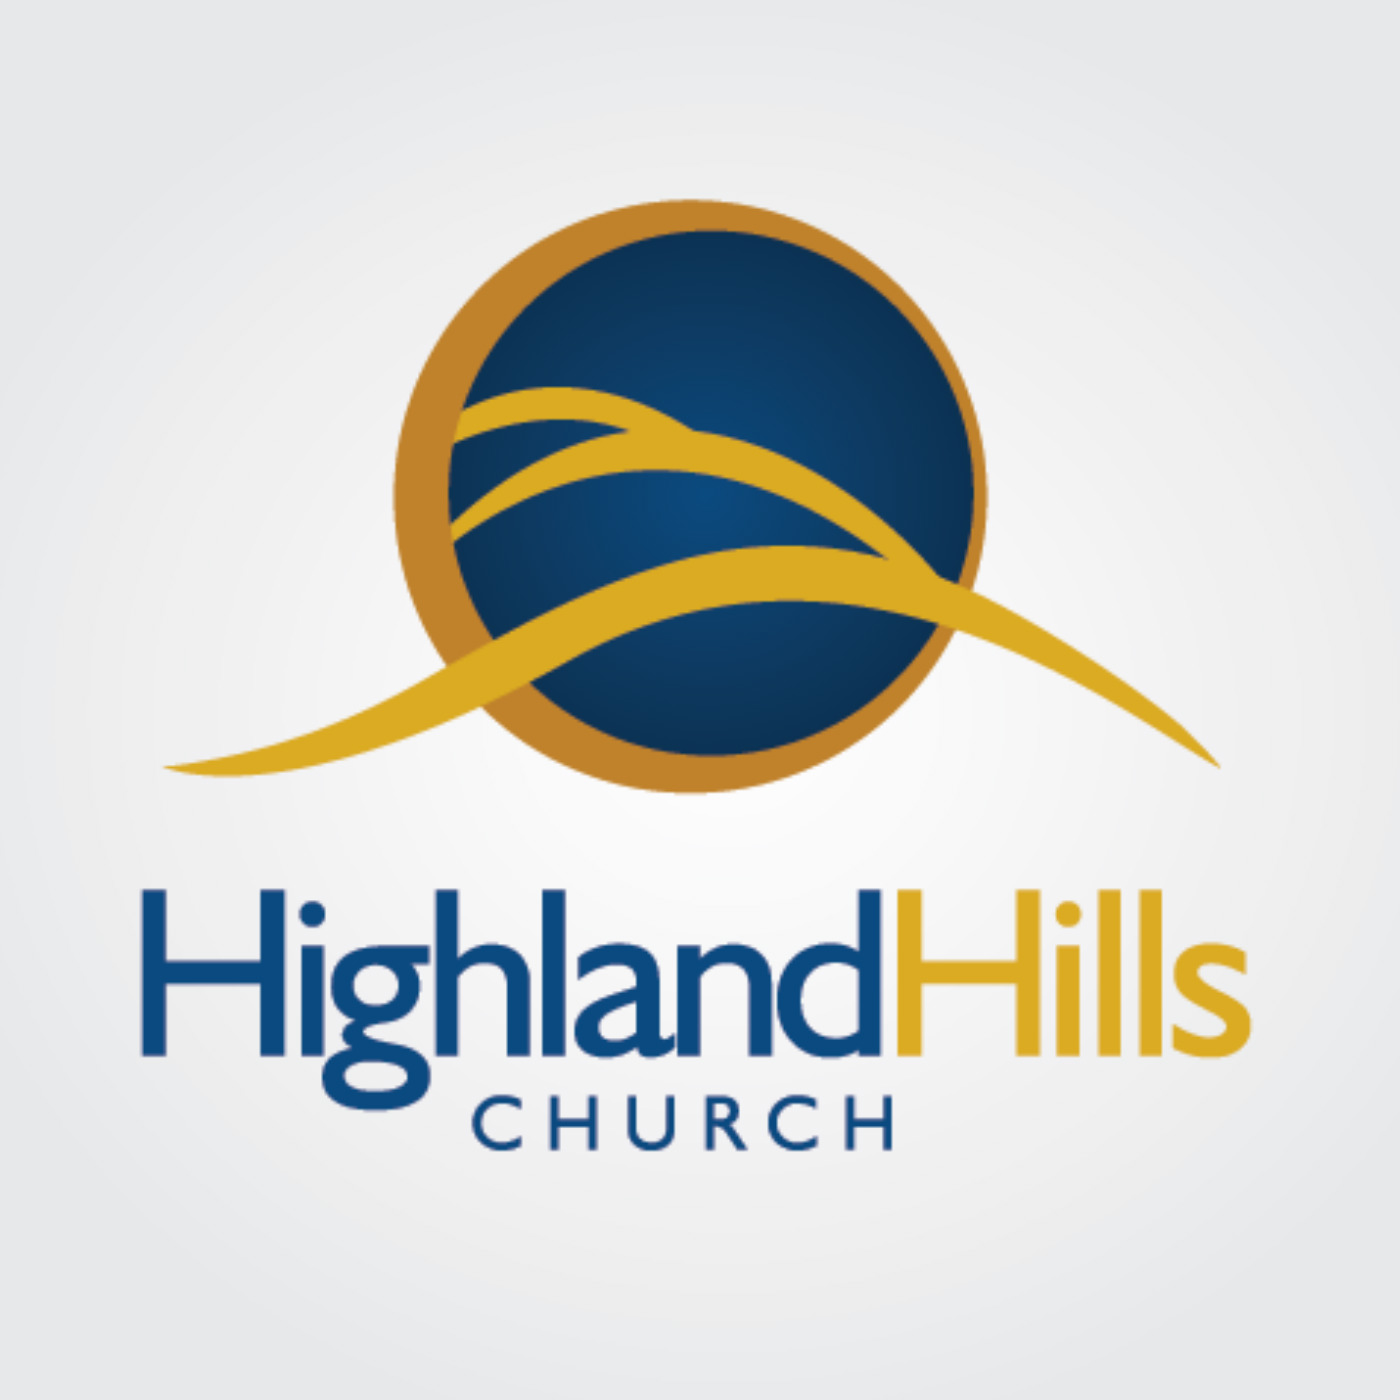 Highland Hills Church